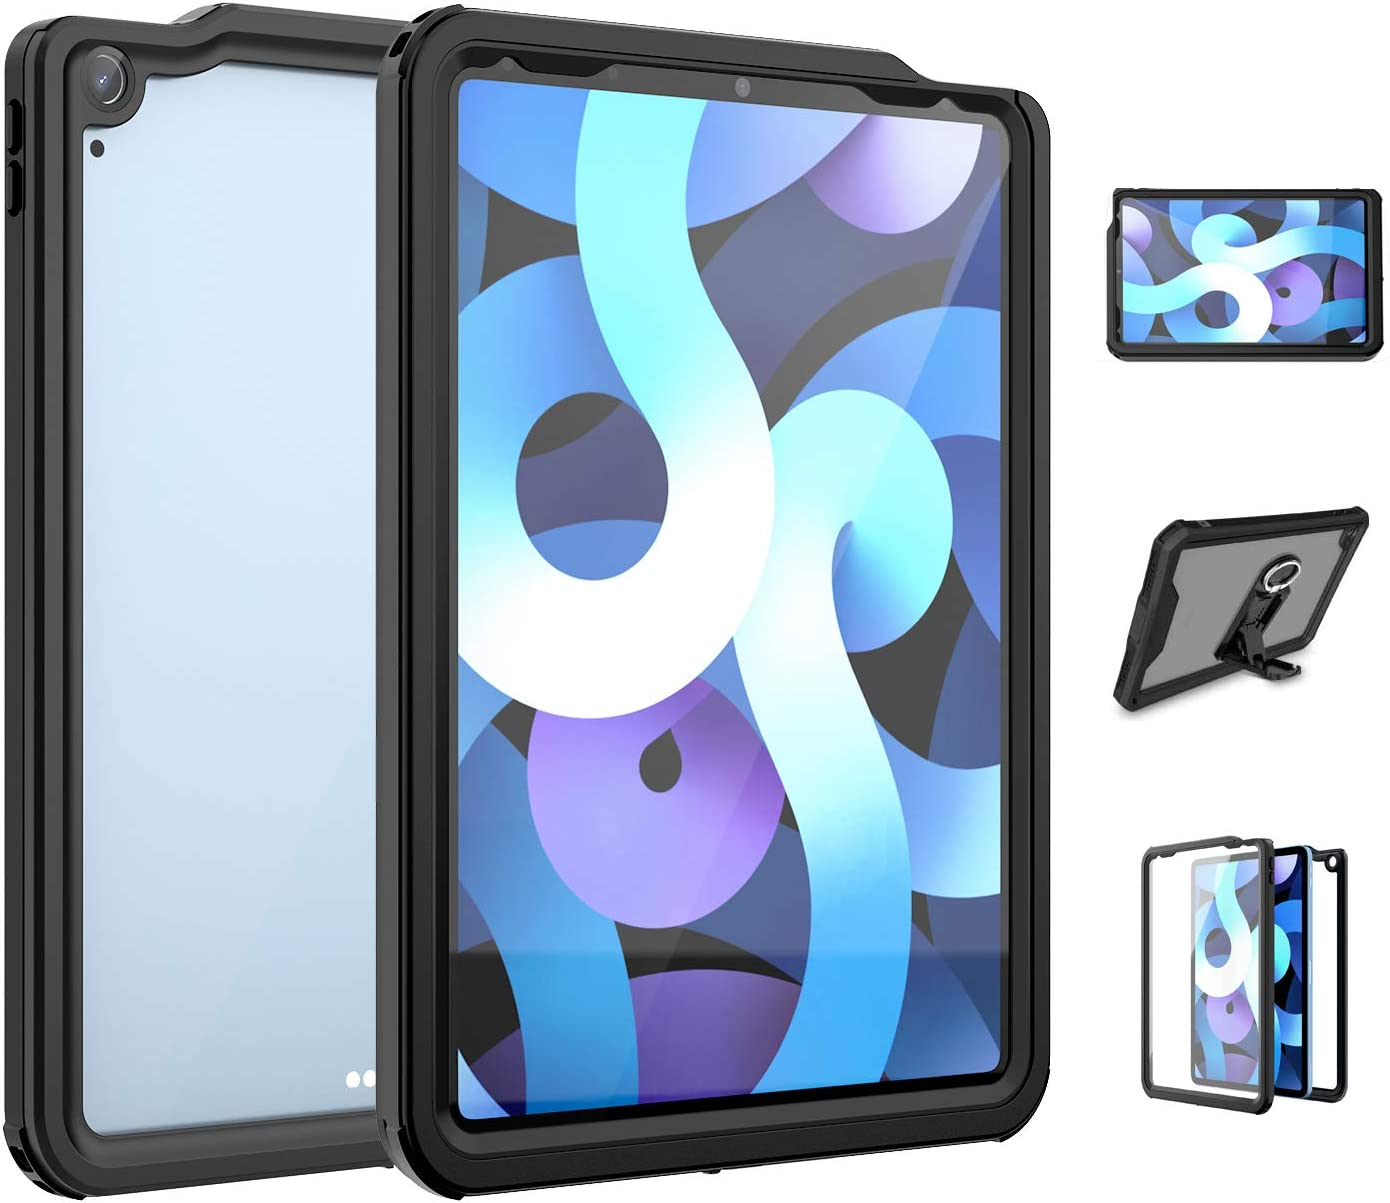 Ezanmull iPad Air 4 / 4th Generation Case 10.9 Inch 2020 Waterproof Shockproof, with Screen Protector, Kickstand and Strap, Full Protective Heavy Duty Rugged Cover for iPad Air 4 10.9 Inch